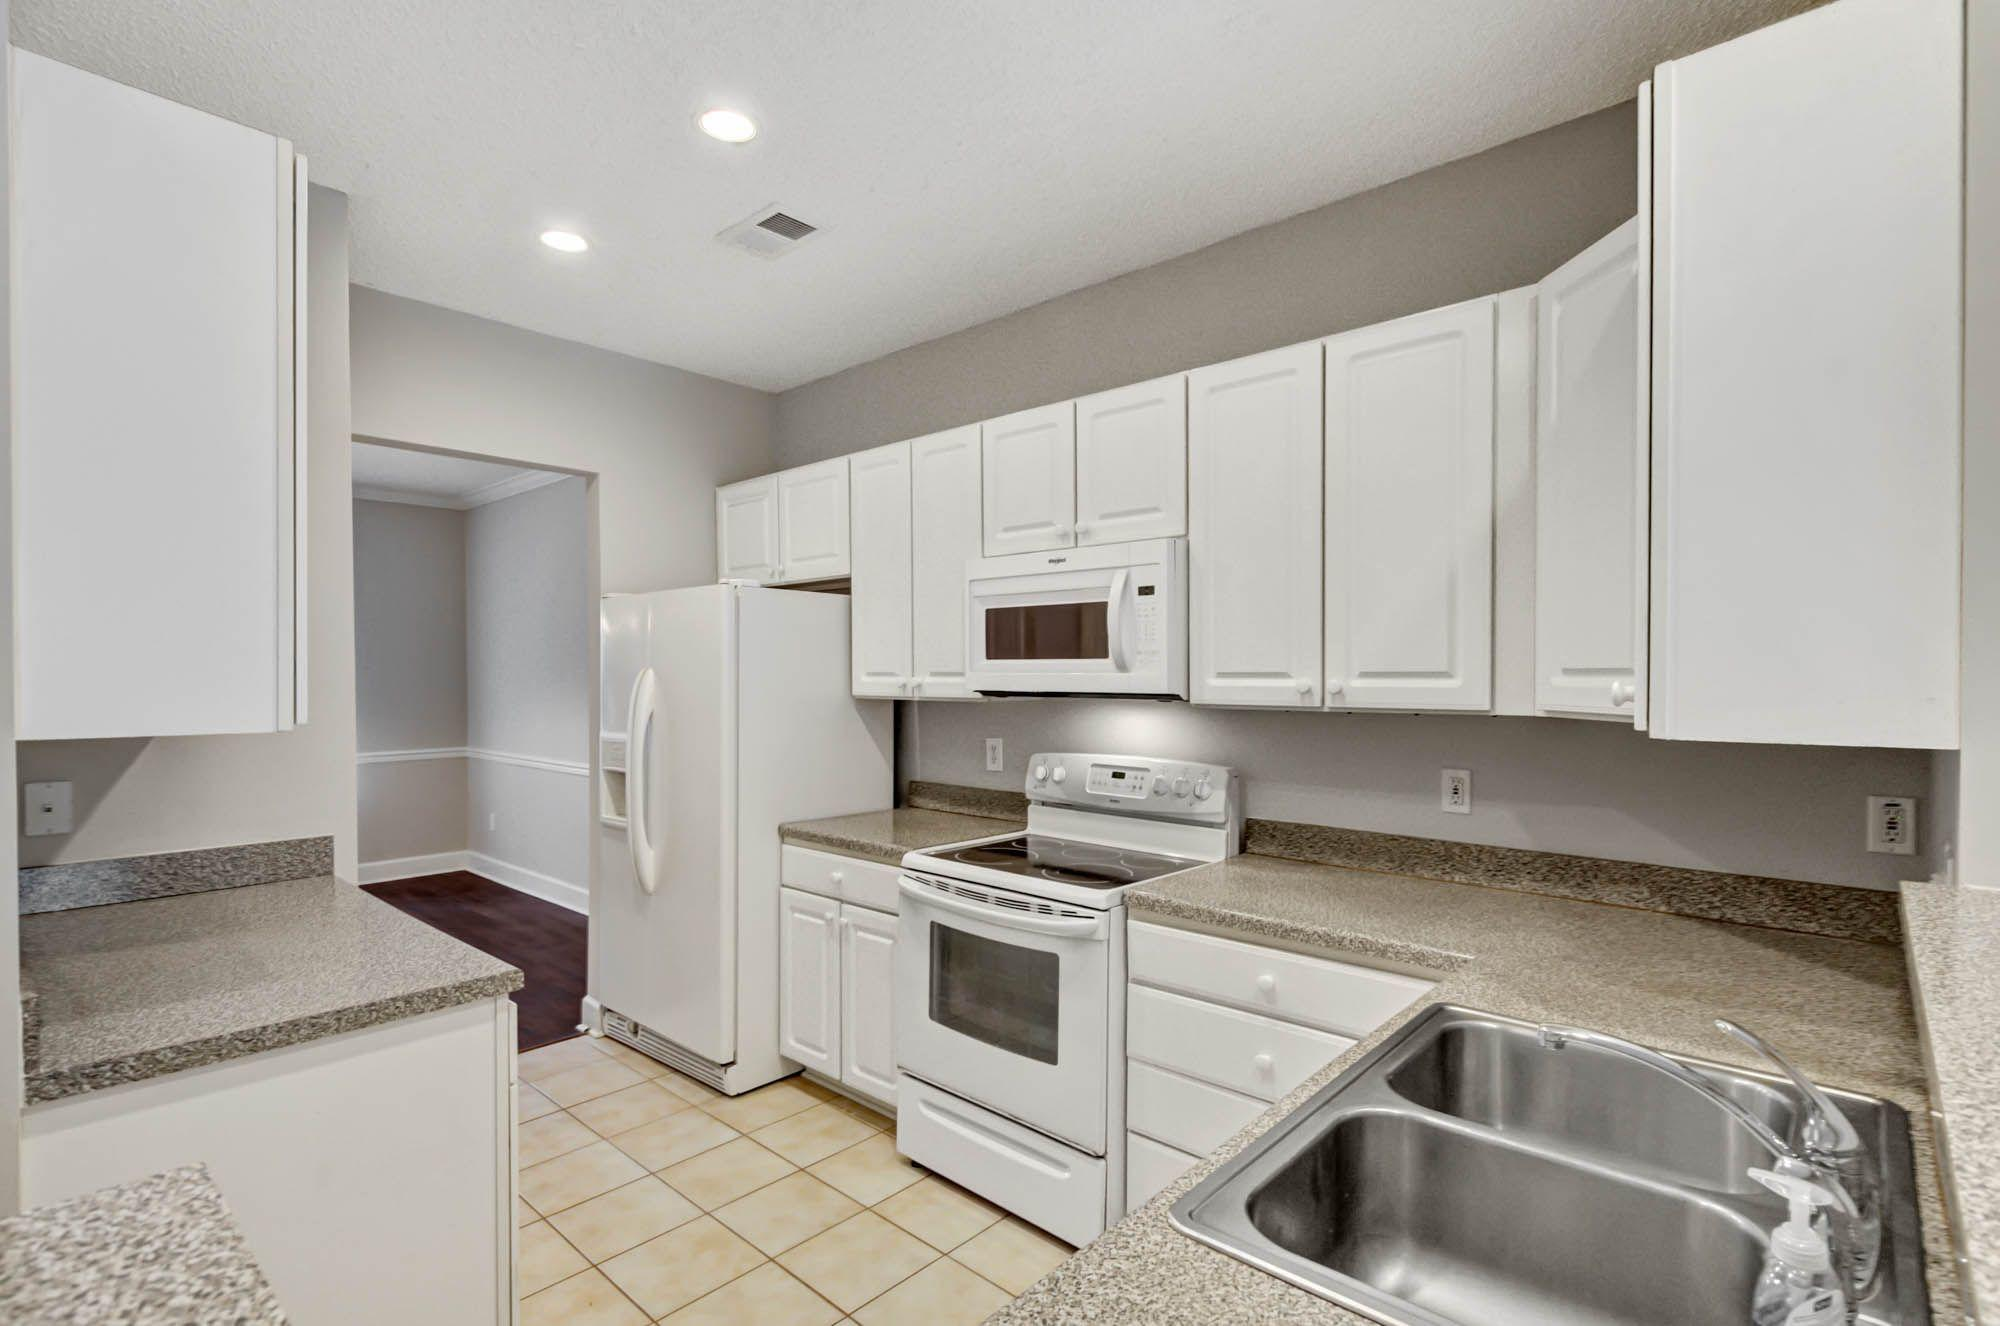 Whitney Lake Condos For Sale - 2926 Sugarberry, Johns Island, SC - 23